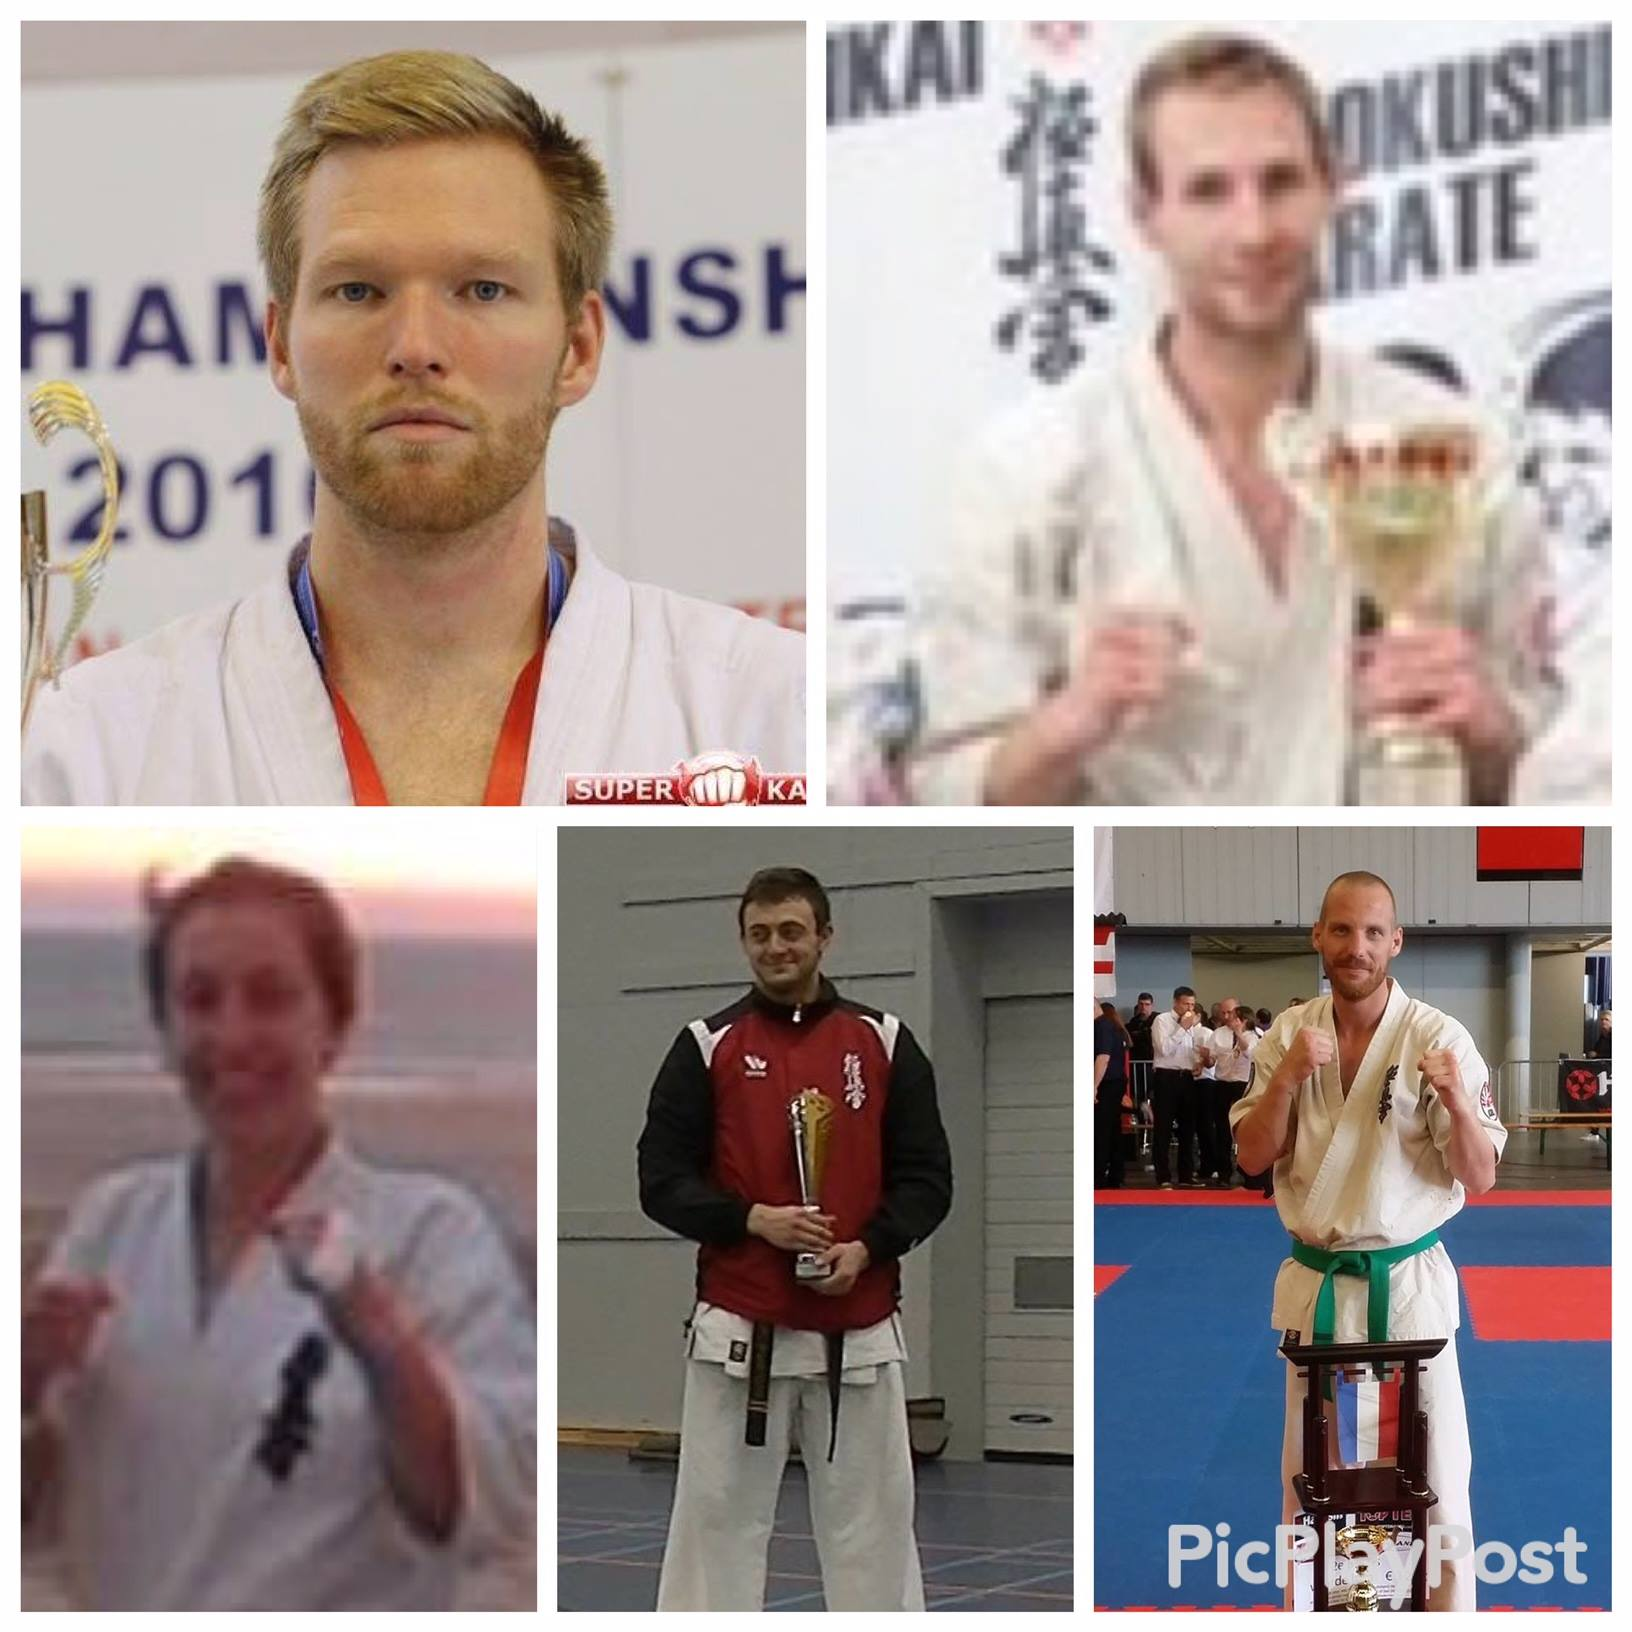 Netherlands who bring with them Dutch Unified Championship podium placers:  Roel Noordman Mens Heavyweight Dutch Unified Champion 2016 KWU World Championships 2015 3rd place SENI West Europe Cup 2016 Champion  Kelvin Teinstra Mens Middleweight SENI West Europe Cup 2016 2nd place 2nd Dutch Unified Championships 2016  Chelsea Kerklaan Womens Heavyweight Dutch Unified Champion 2016  Leroy Verschuren Mens Lightweight 2nd Dutch Unified Championships 2016